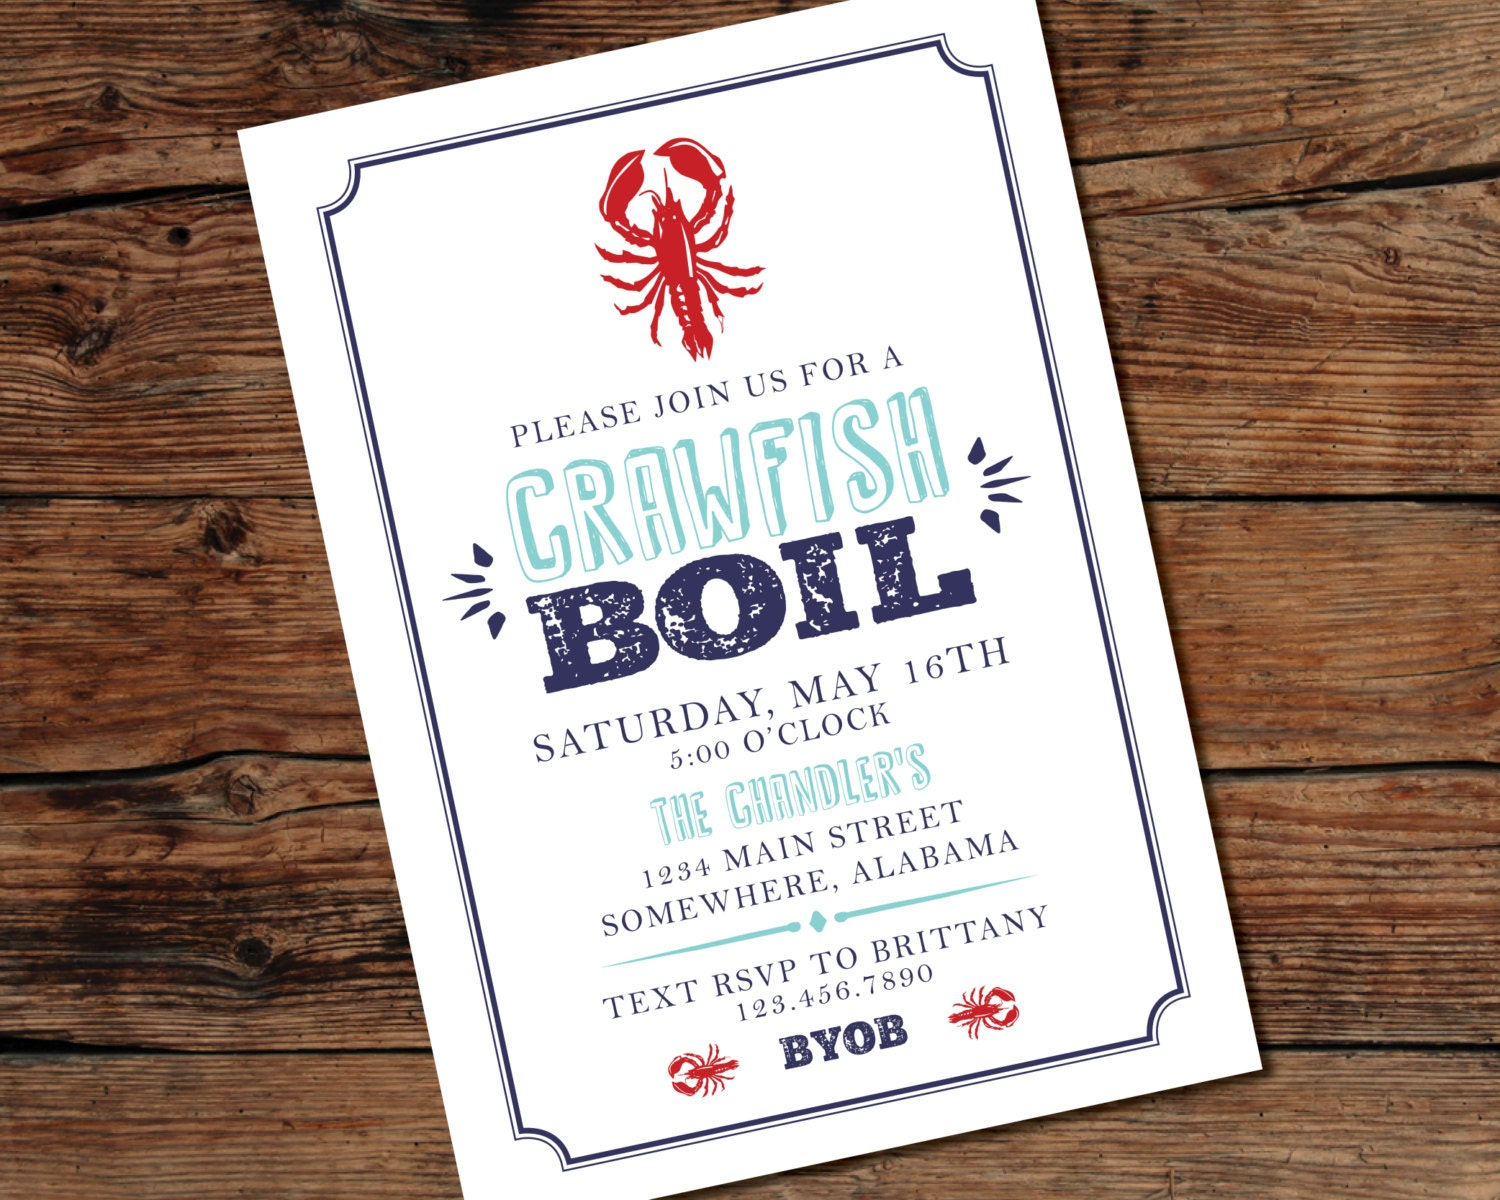 Mesmerizing image regarding crawfish boil invitations free printable